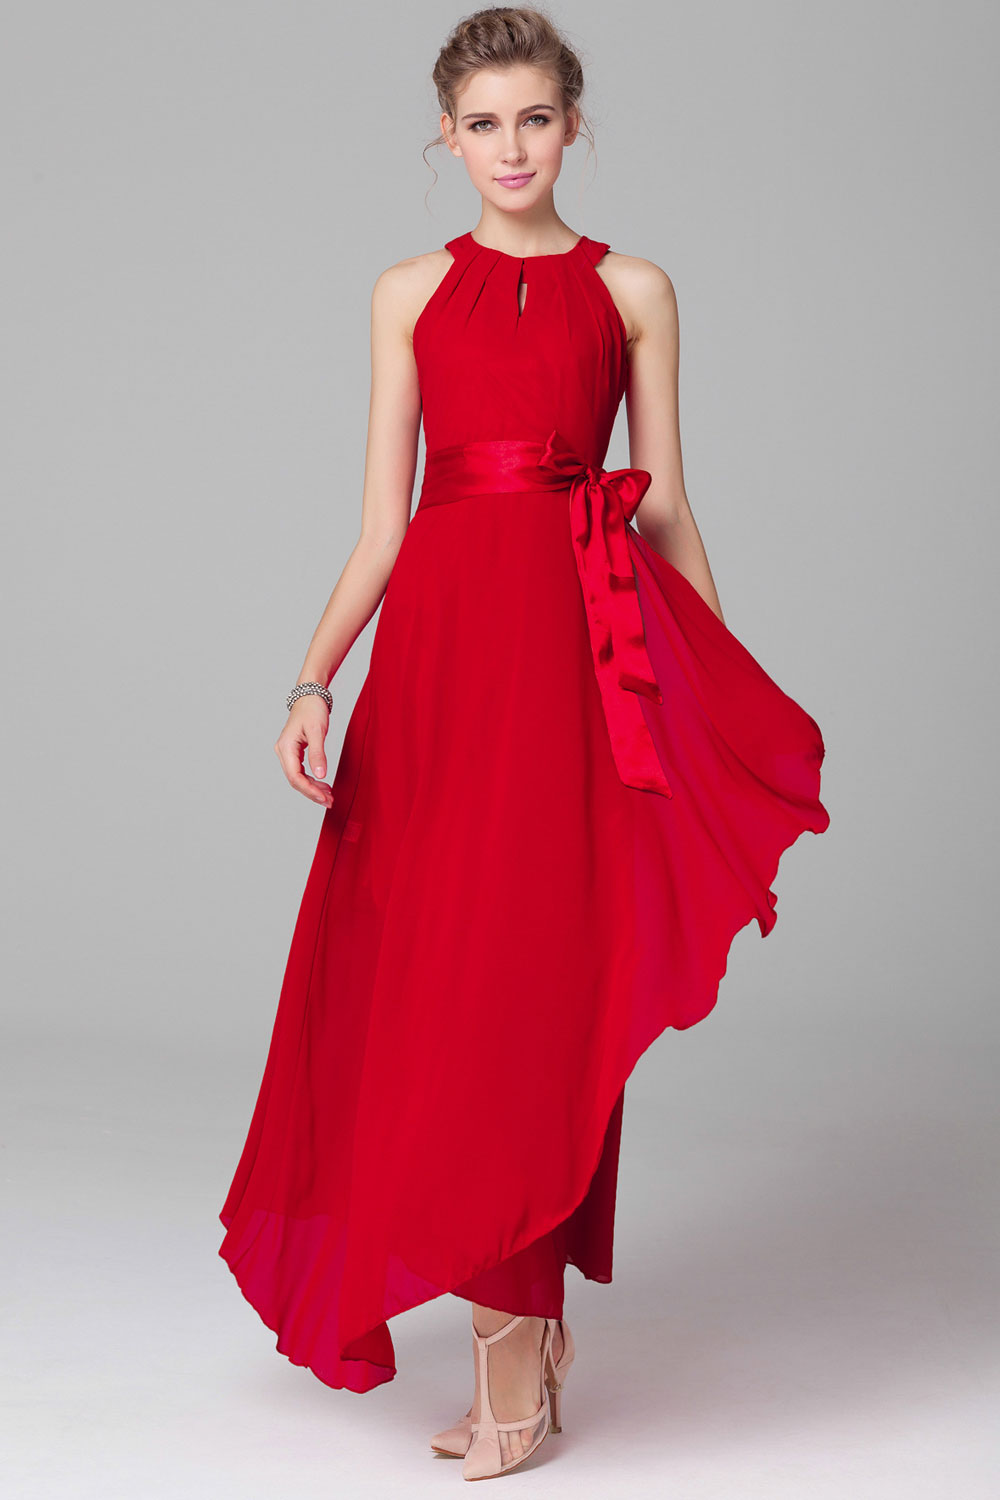 WOMENS CHIFFON SLEEVELESS PROM DRESS RED